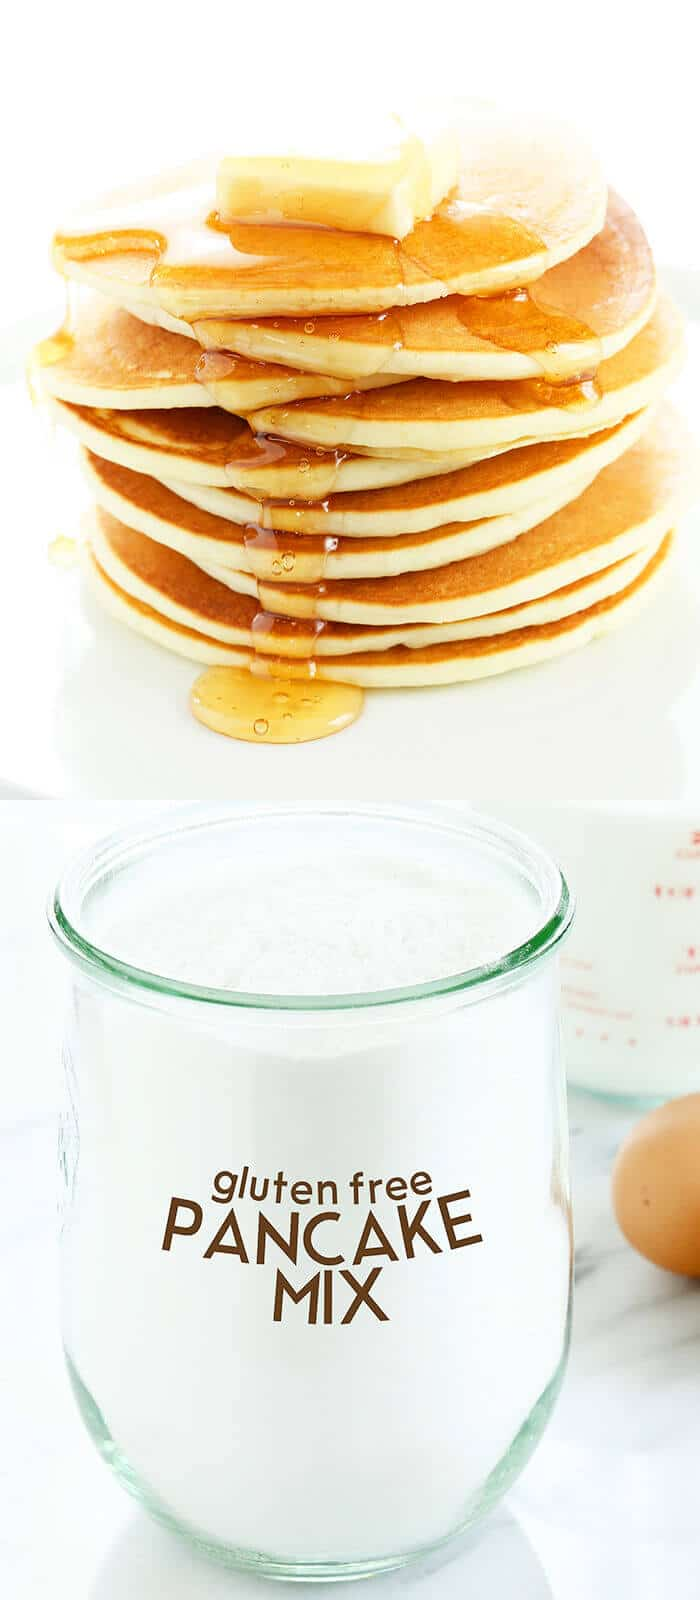 Gluten free pancakes mix that's perfect for everything from pancakes and muffins to breakfast bakes. Ditch that box and D.I.Y. a better pancake!